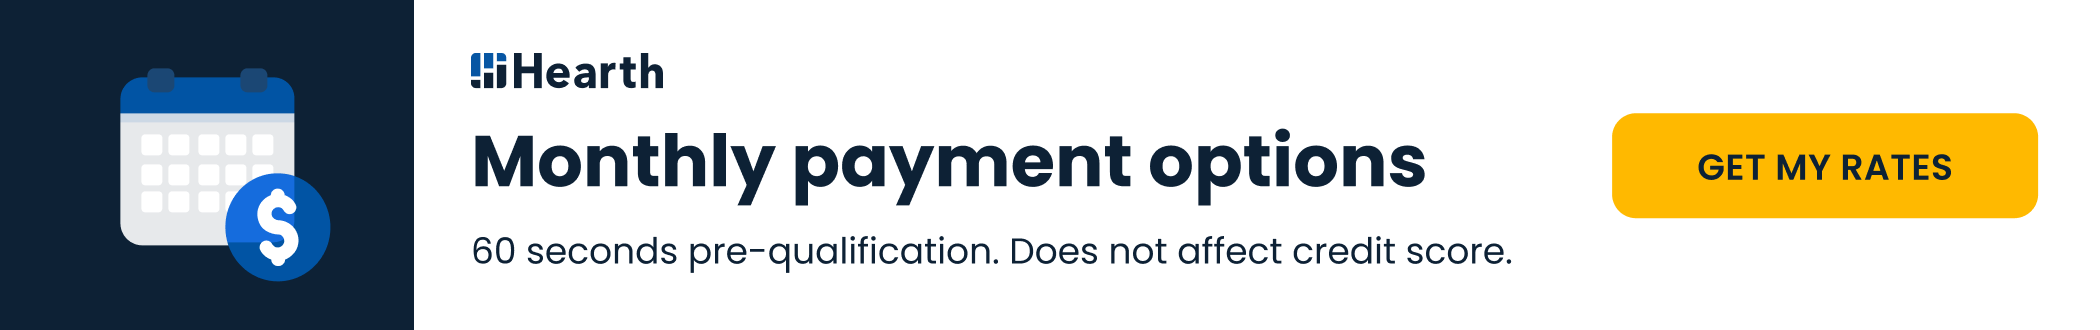 Monthly payment options 60 seconds pre-qualification. does not affect credit score. Get My Rates